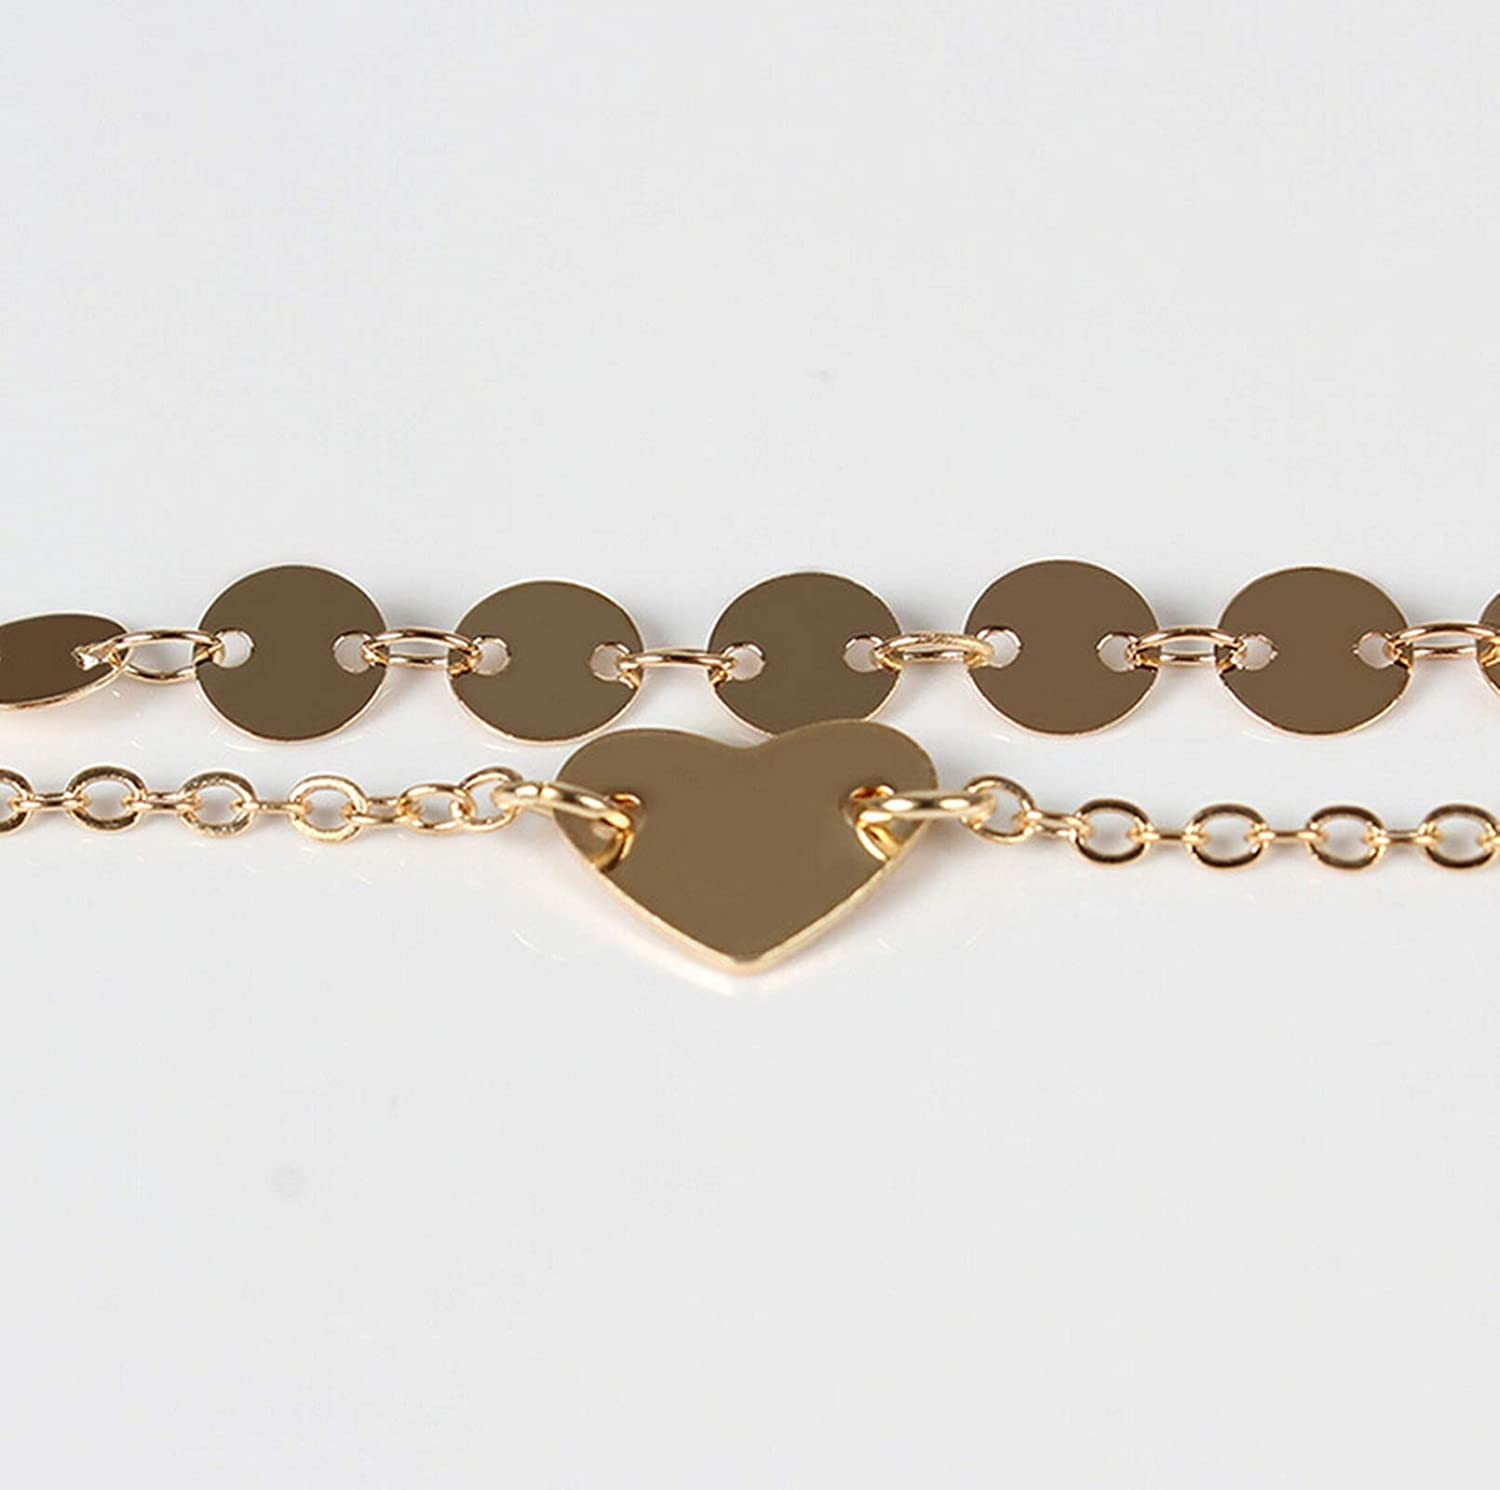 AMDXD Anklet Women Simple Gold Plated Double Layer Chain Heart Anklets Chain Summer Jewelry Teens Gold 21CM